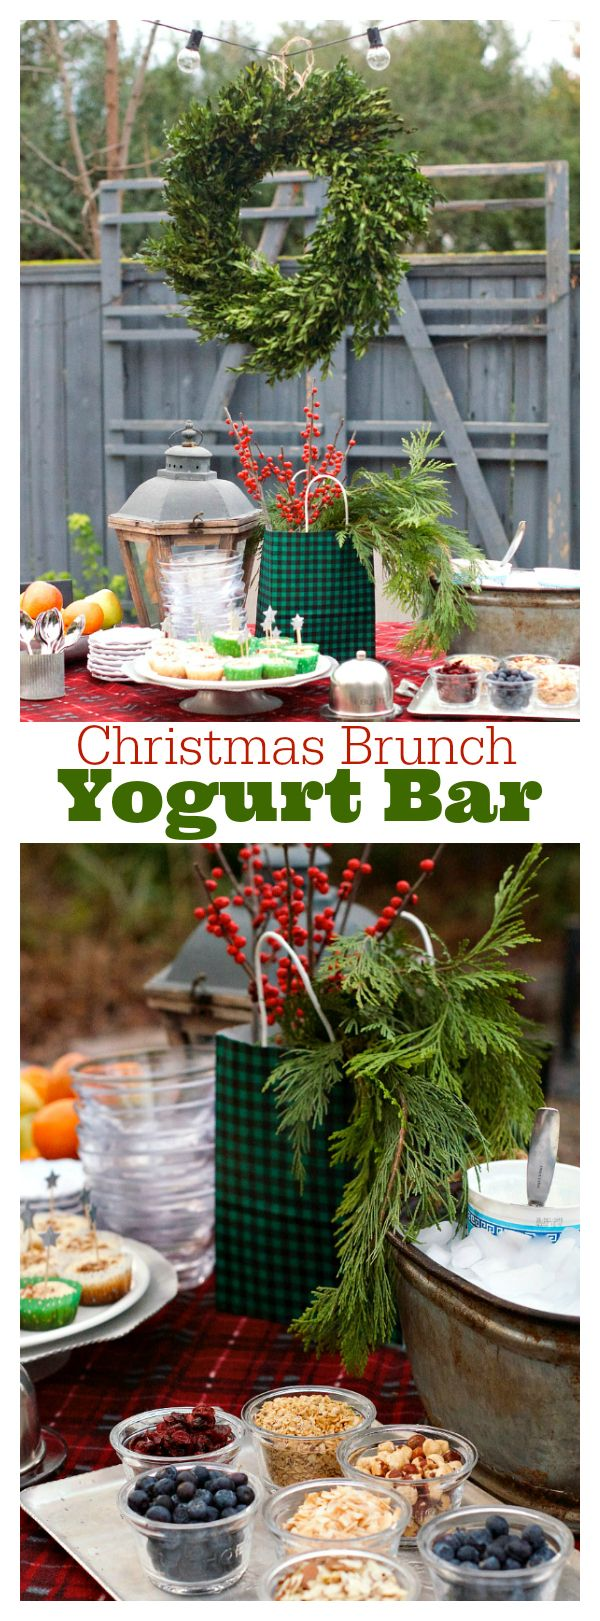 Party details with Christmas Brunch Yogurt Bar ingredients, to share with friends and family, and enjoy the holidays for breakfast or brunch.